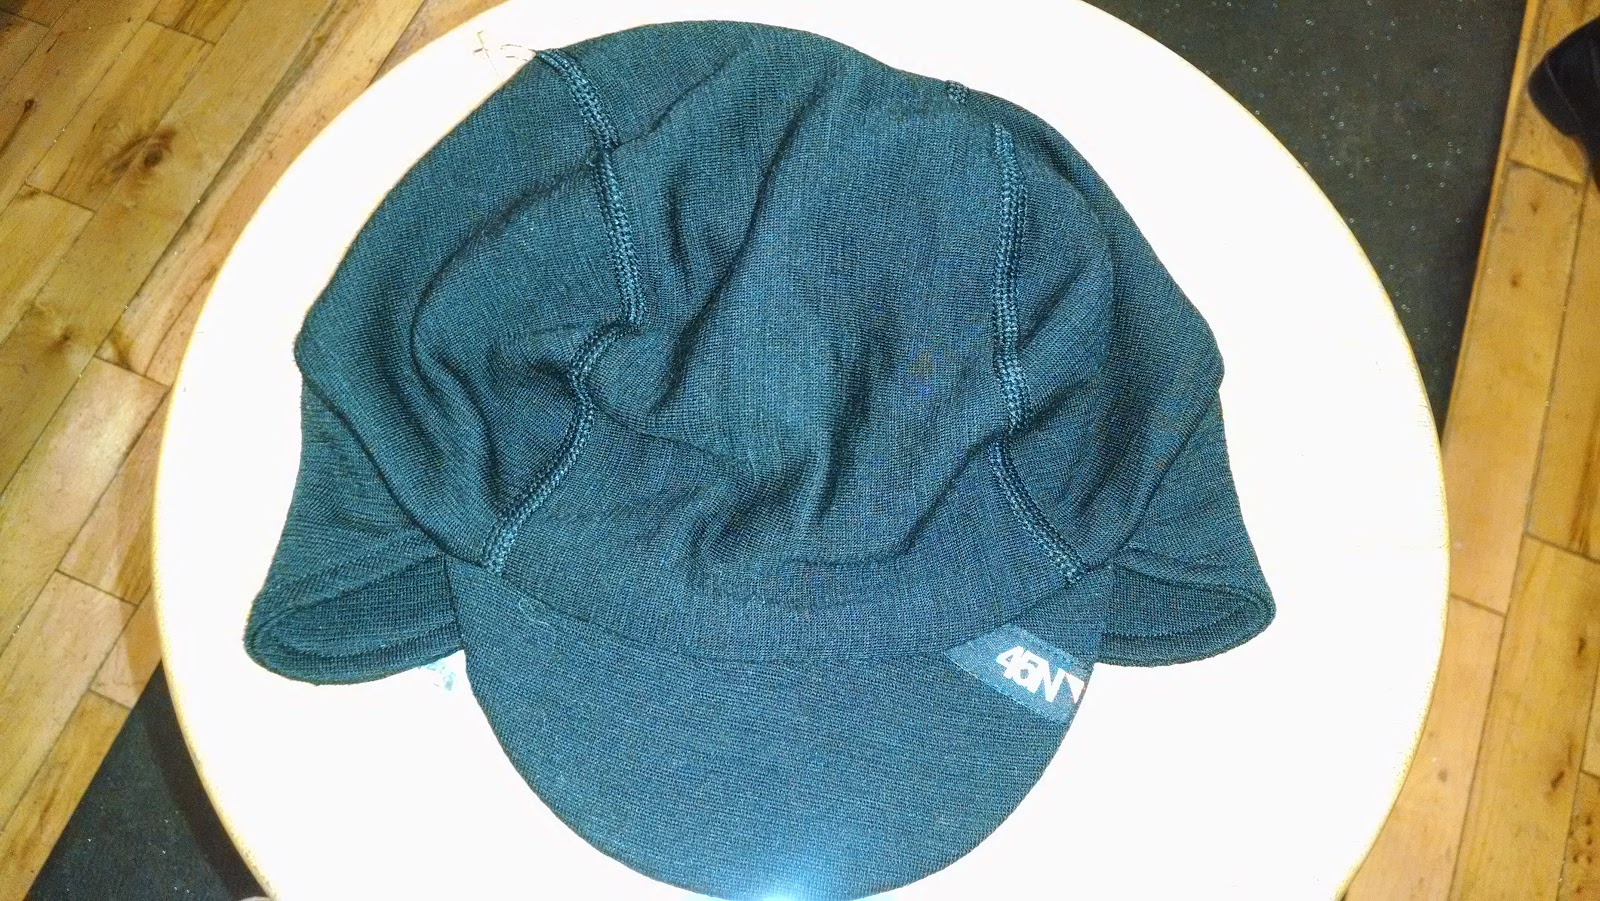 6f766bd8c64 The 100% merino wool cap gives awesome eye and ear coverage and the  flat-lock stitching makes it comfortable to wear under a helmet for hours  on end.